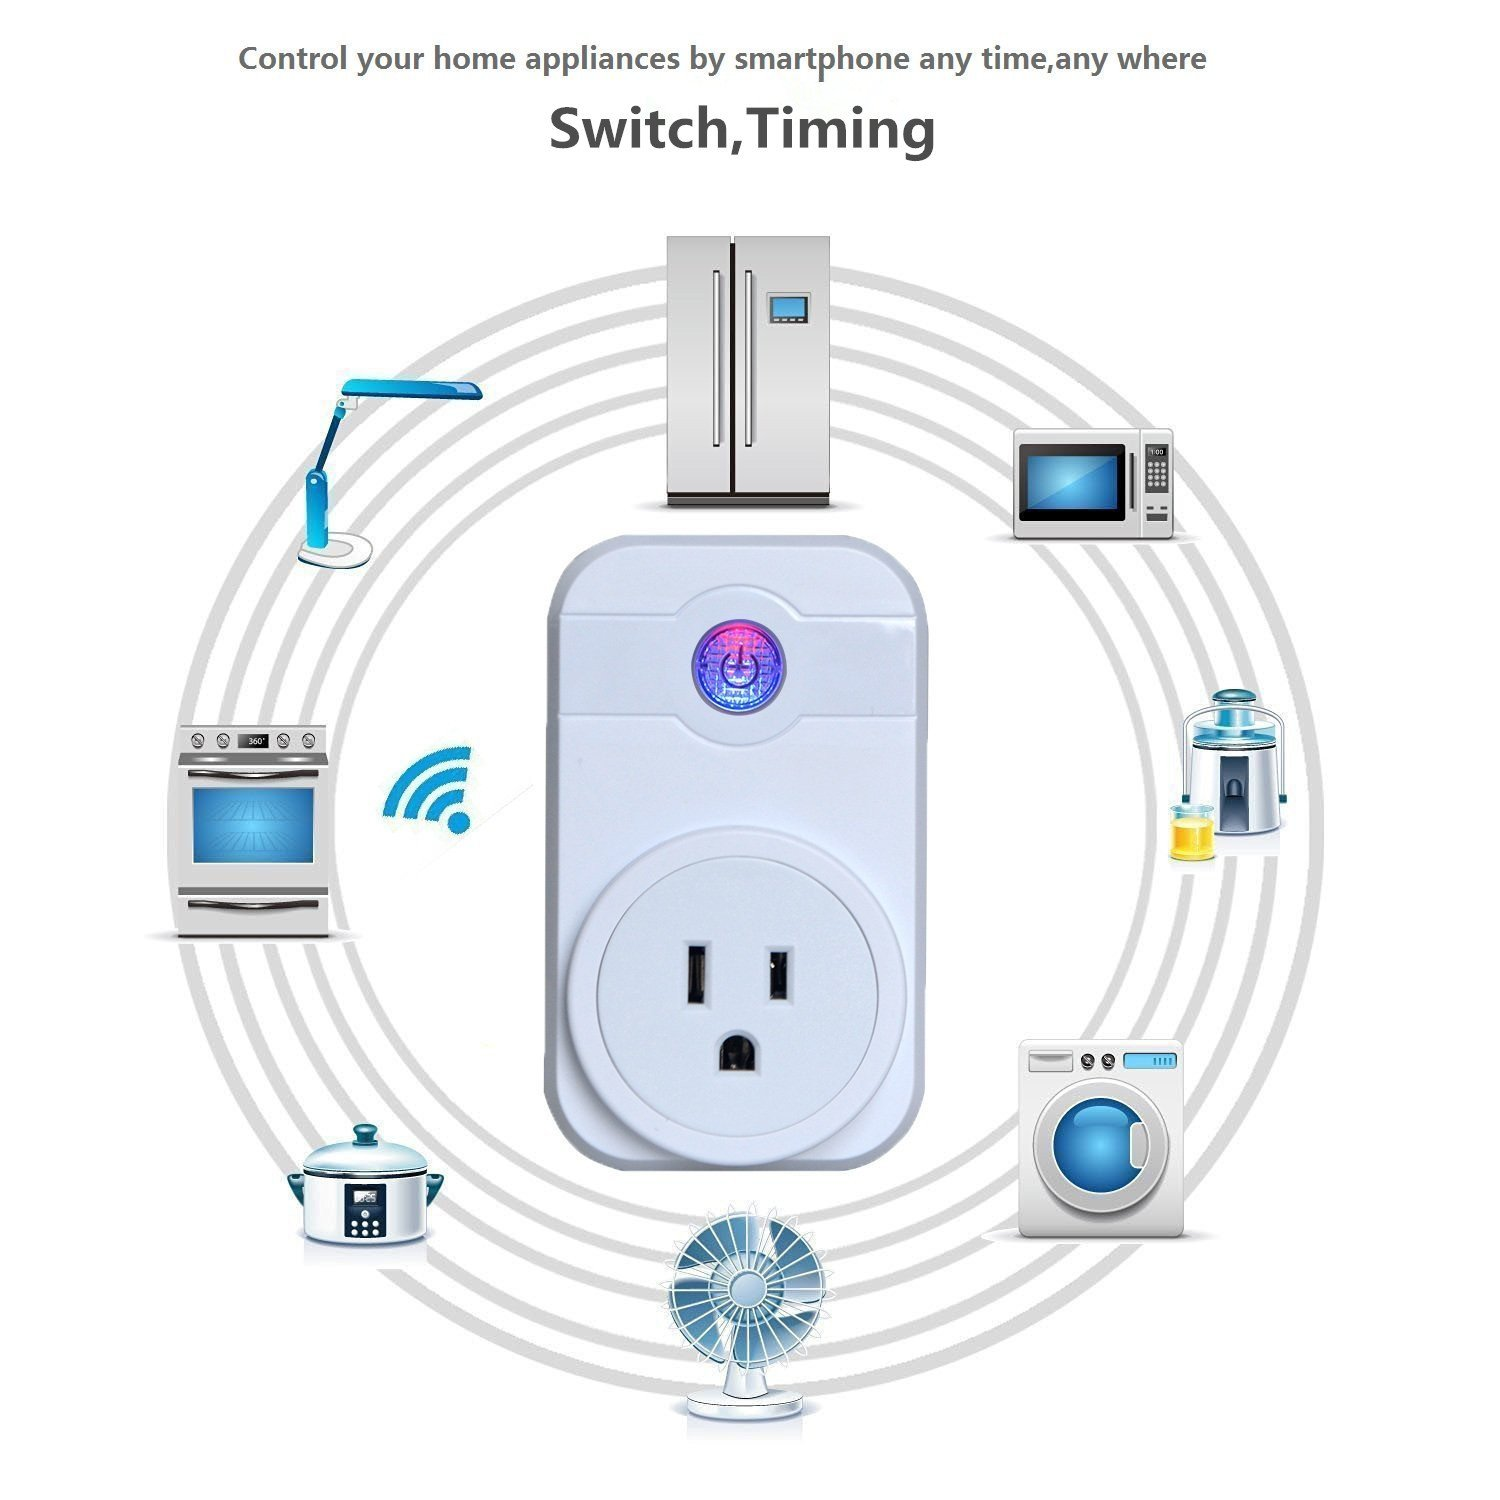 SODIAL Smart Home 10A 2000W Timer Wifi Power Socket Plug Smart Phone Remote Wireless Controls IOS Pad Android(US Plug)